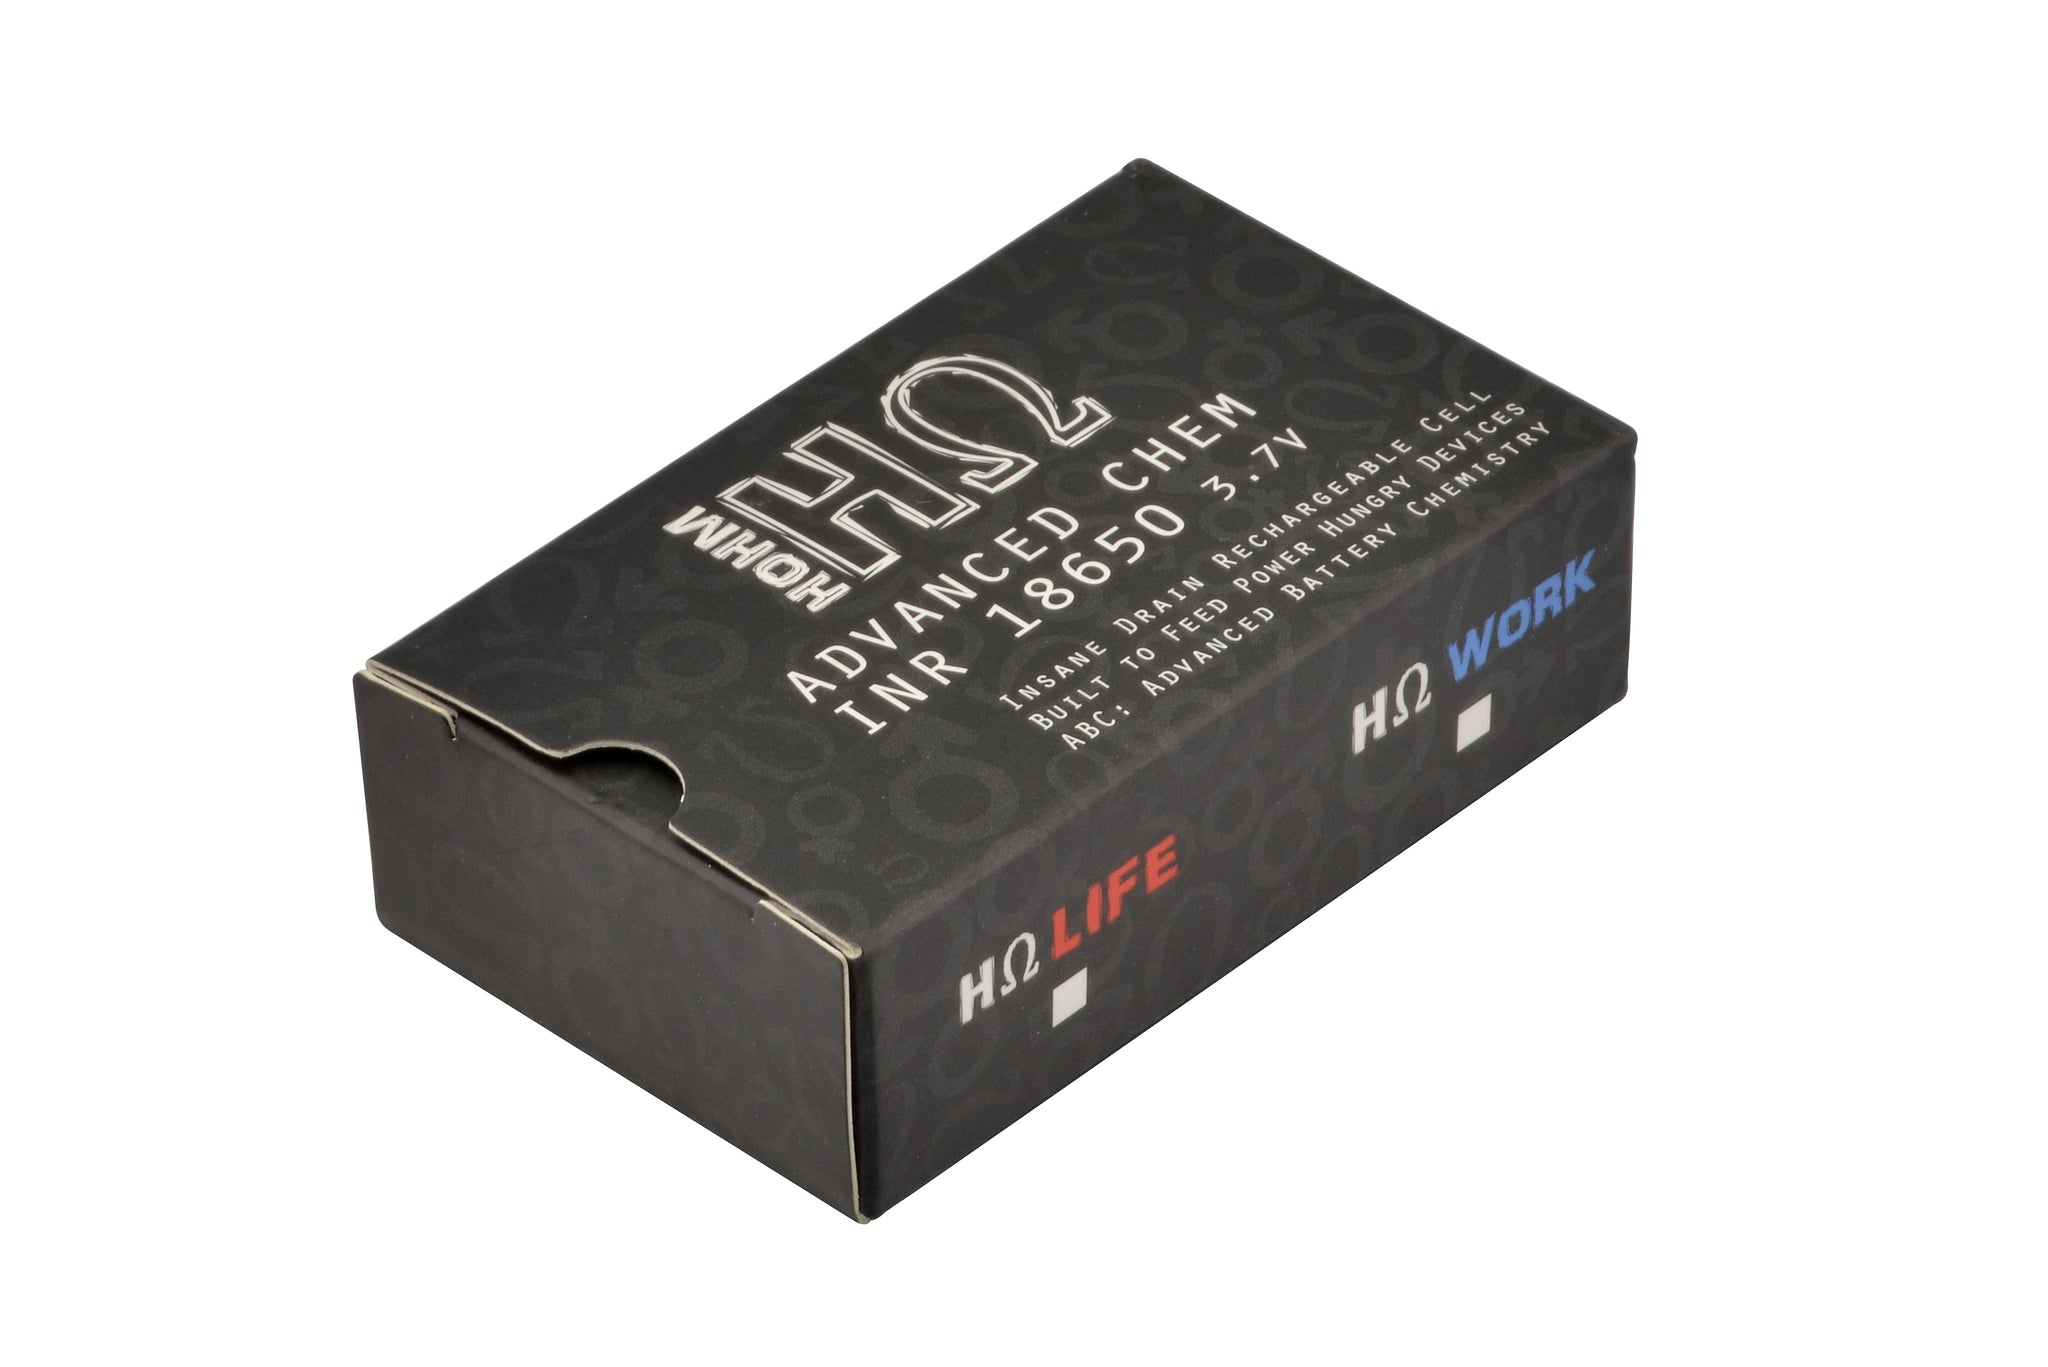 Hohm Tech Hohm Work 18650 Battery